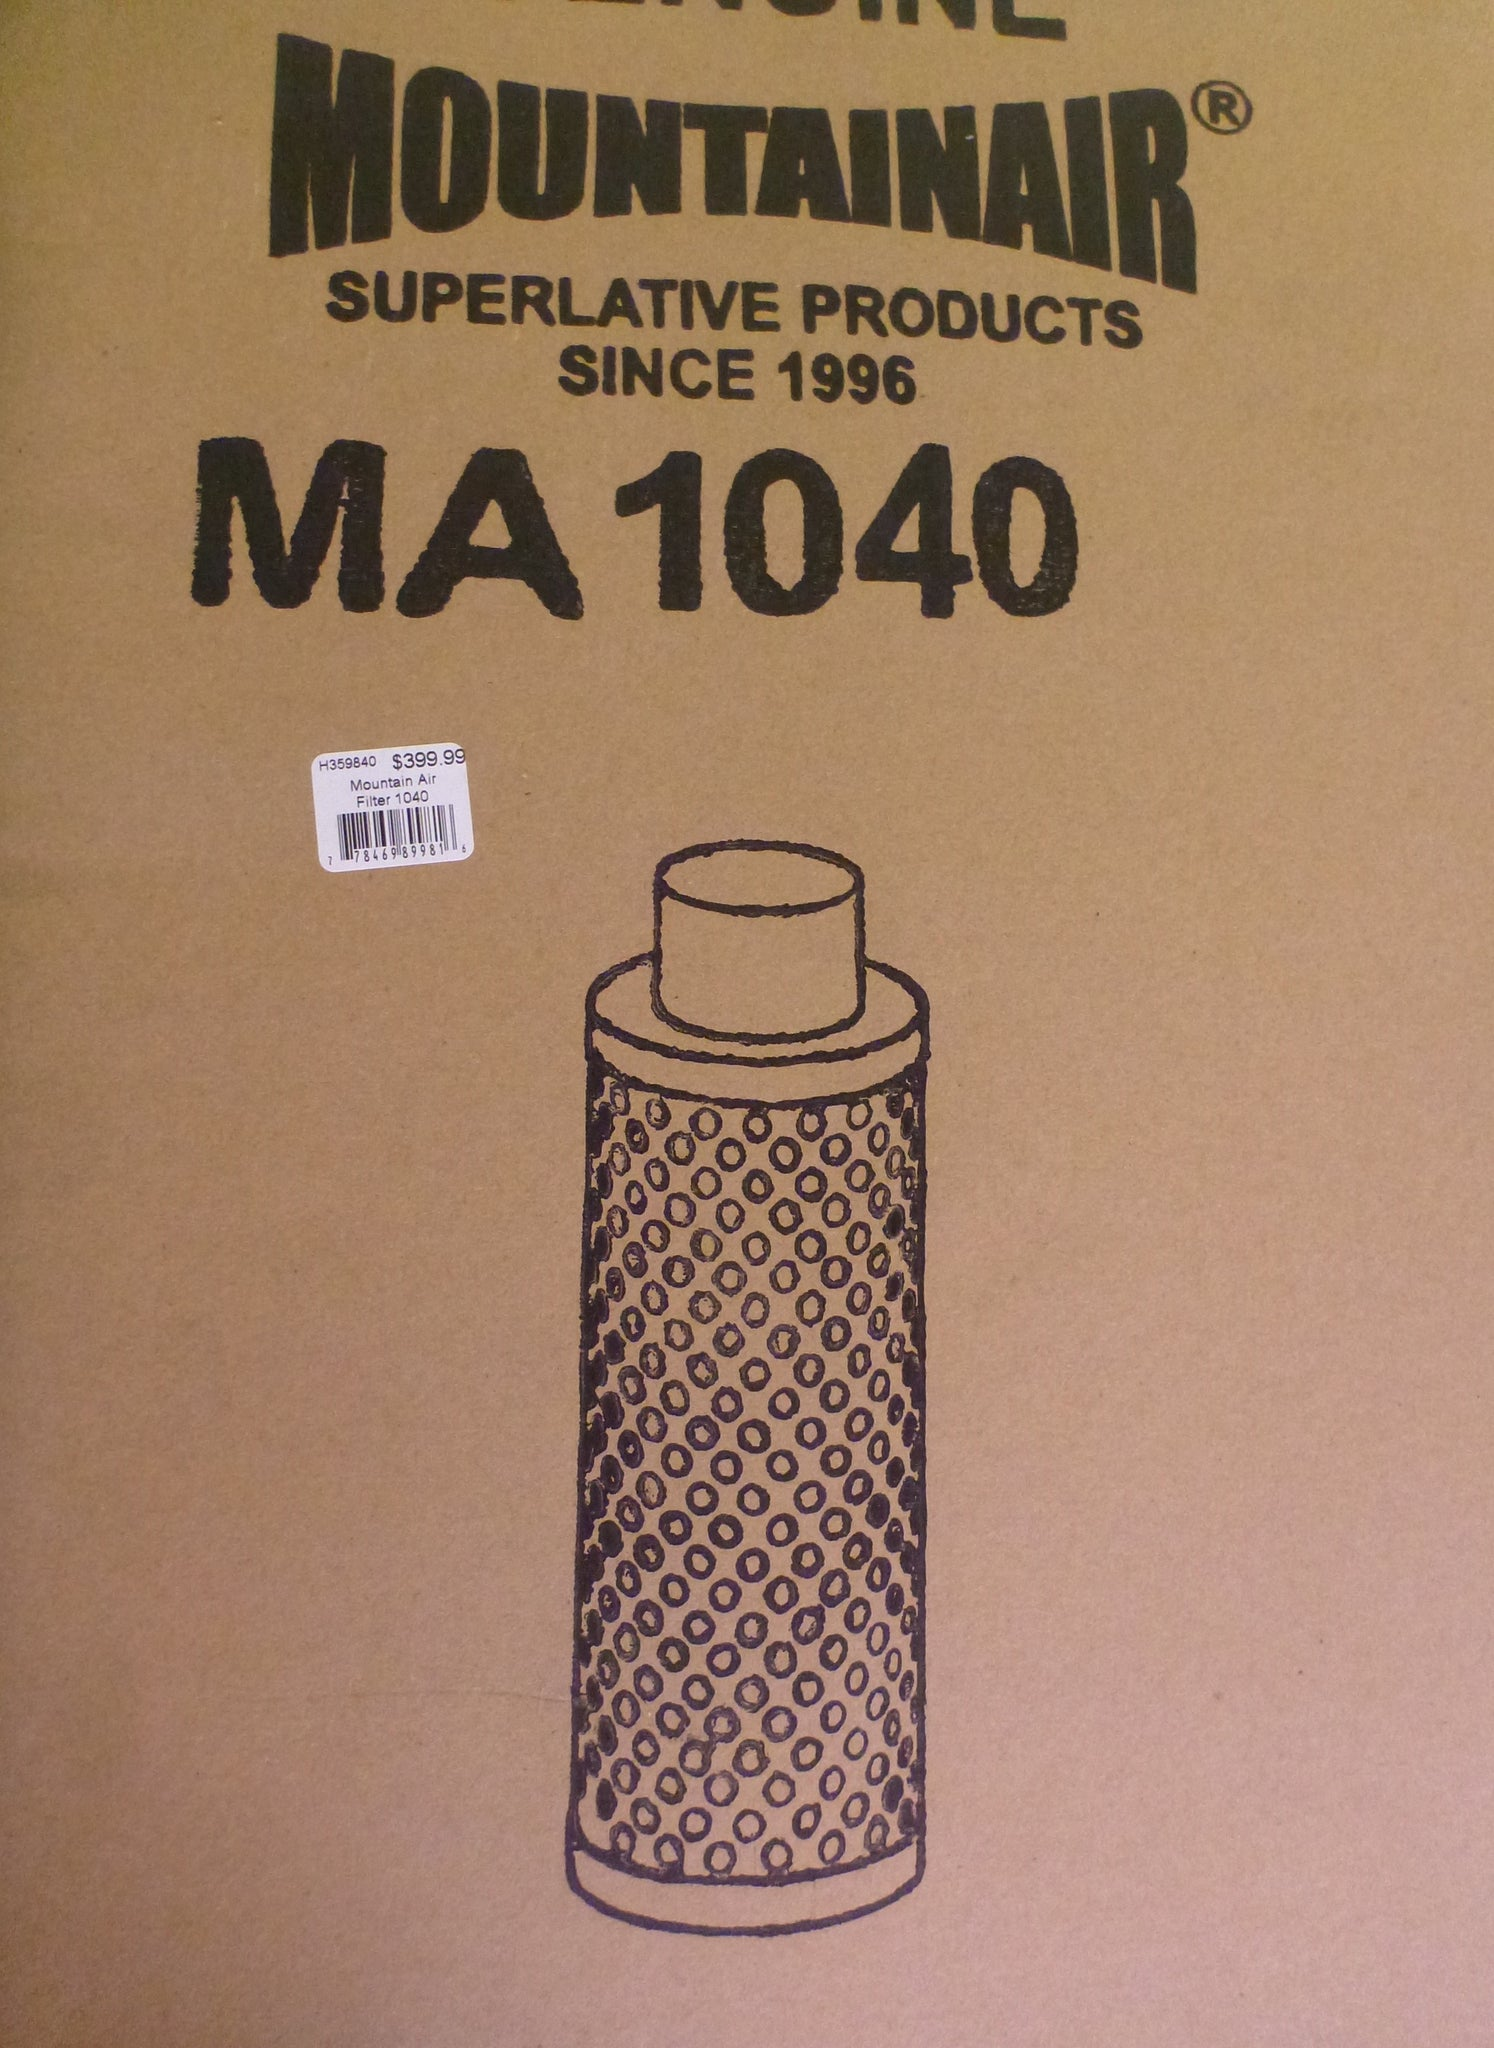 Mountain Air Filter 1040